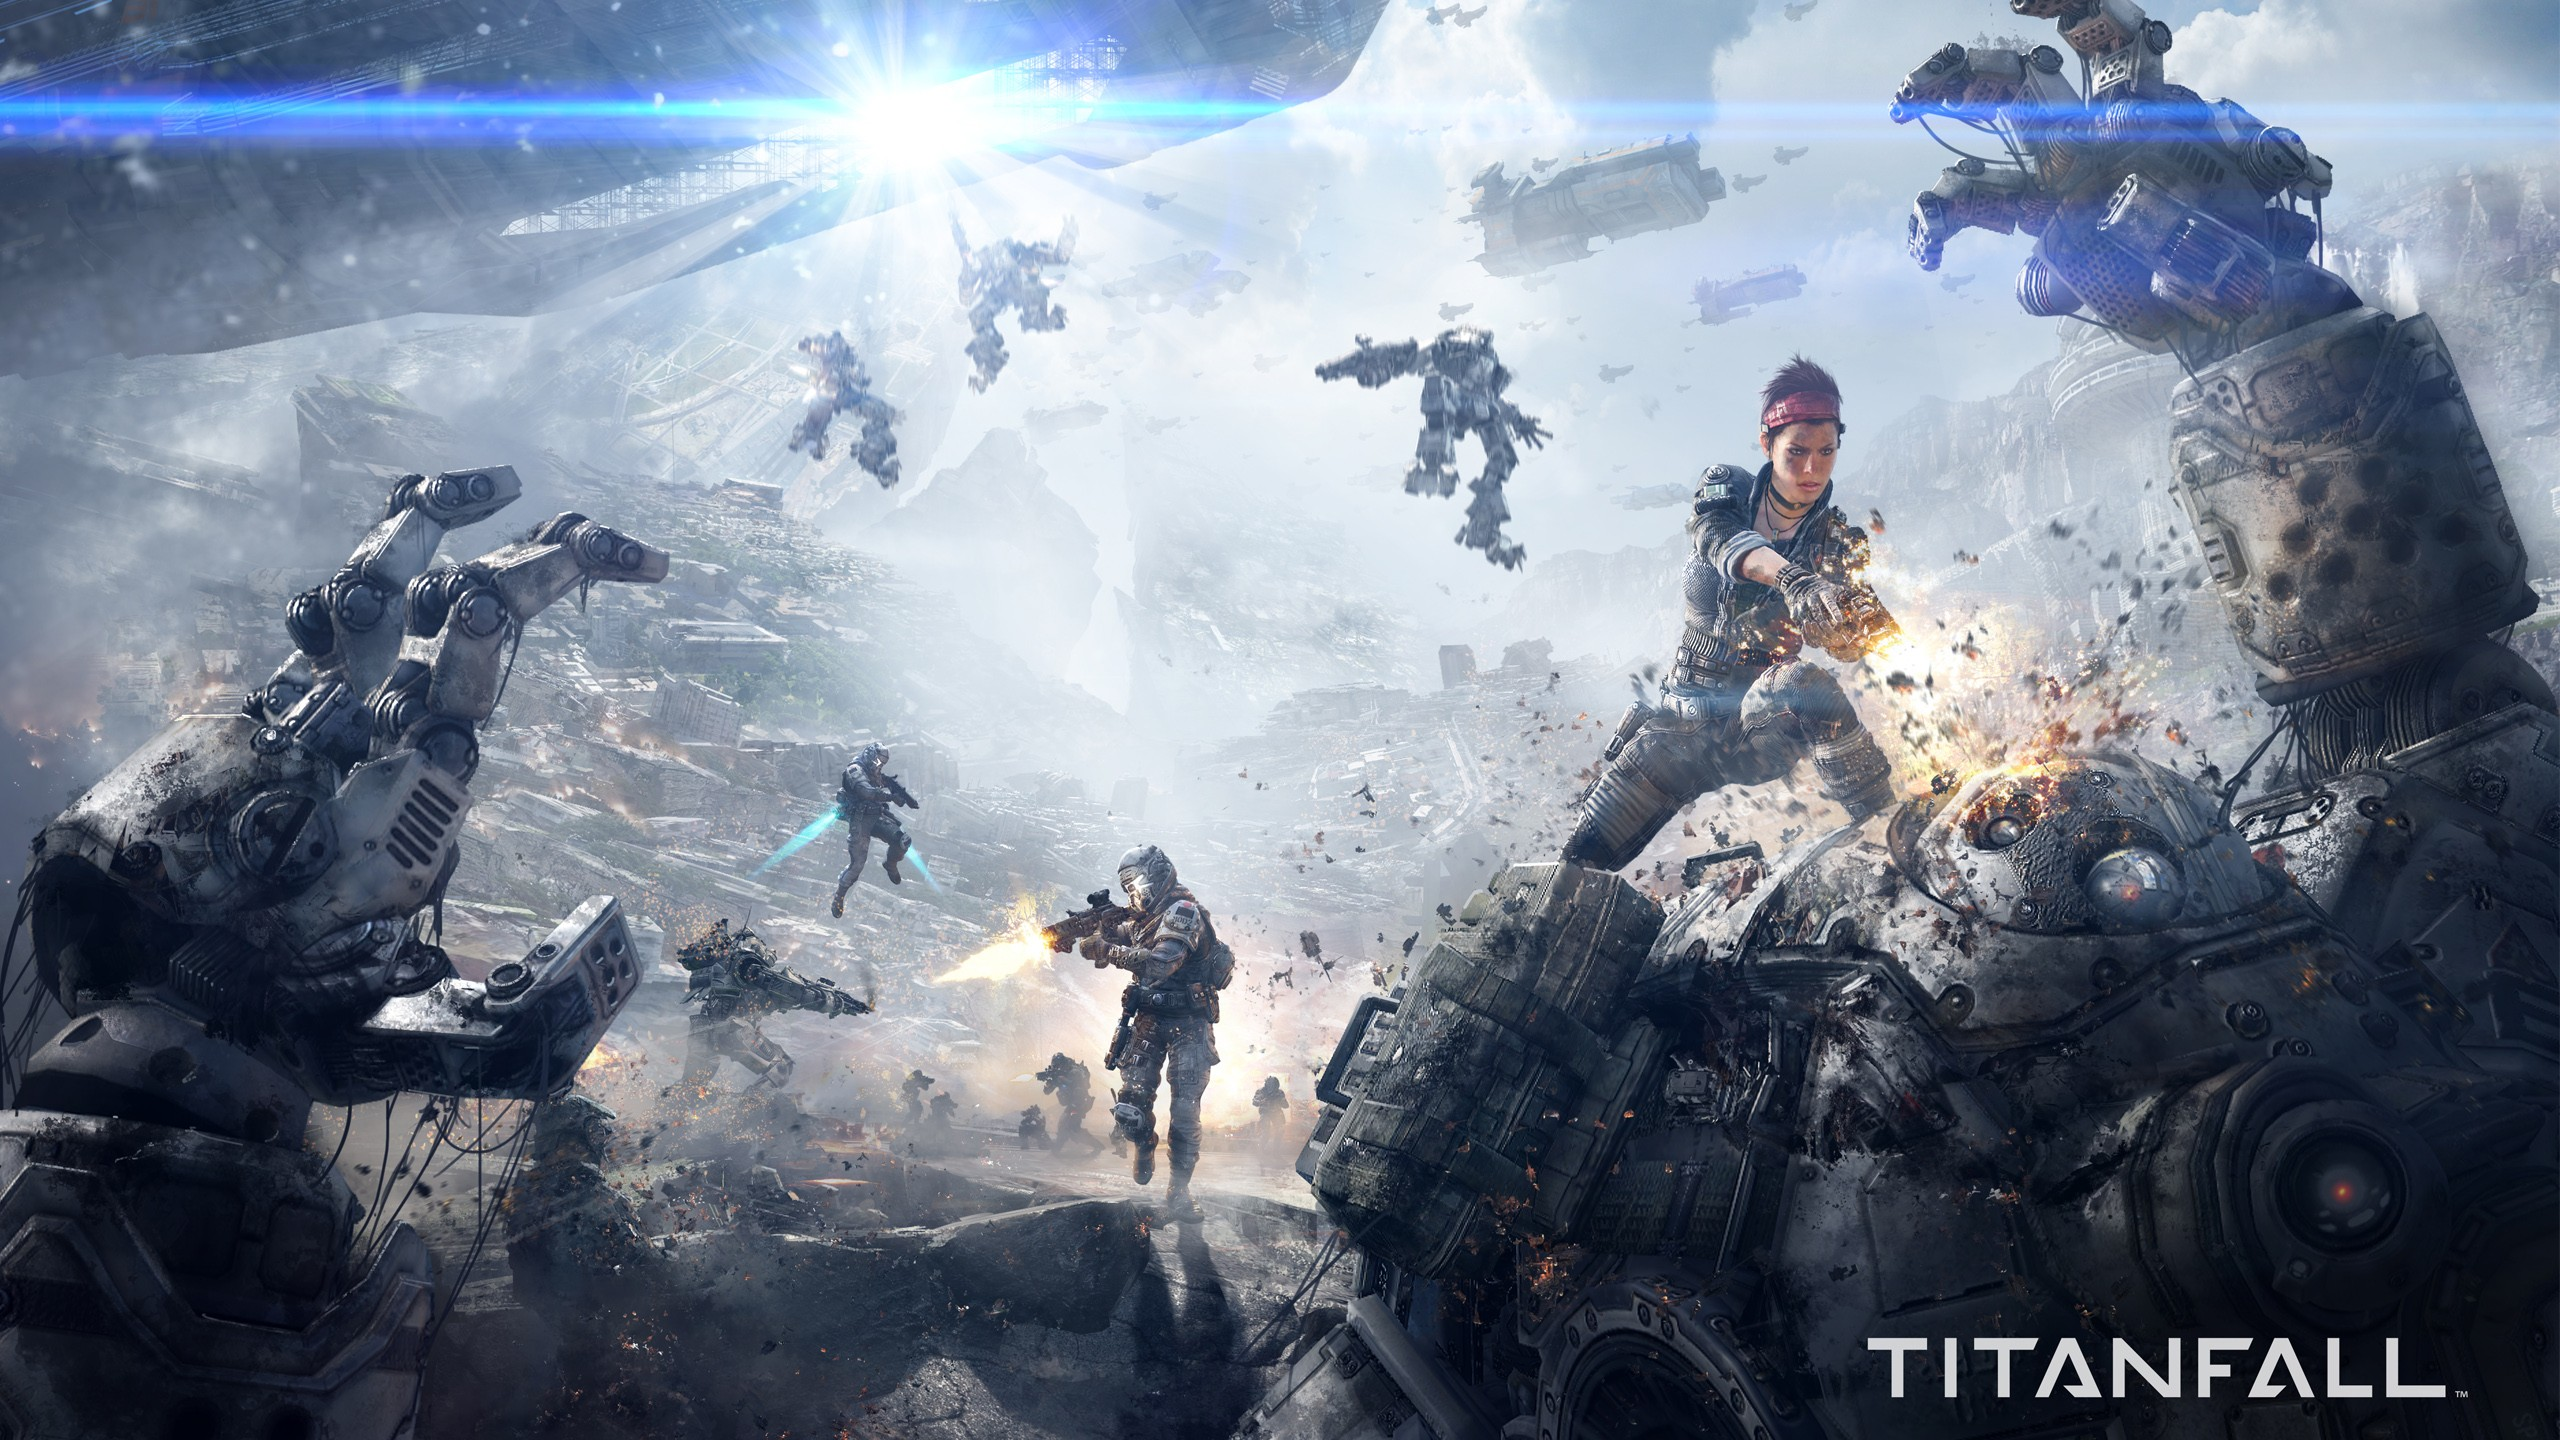 Epic Titan Fall Wallpaper Titanfall Wallpapers Hd Wallpapers Id 13023